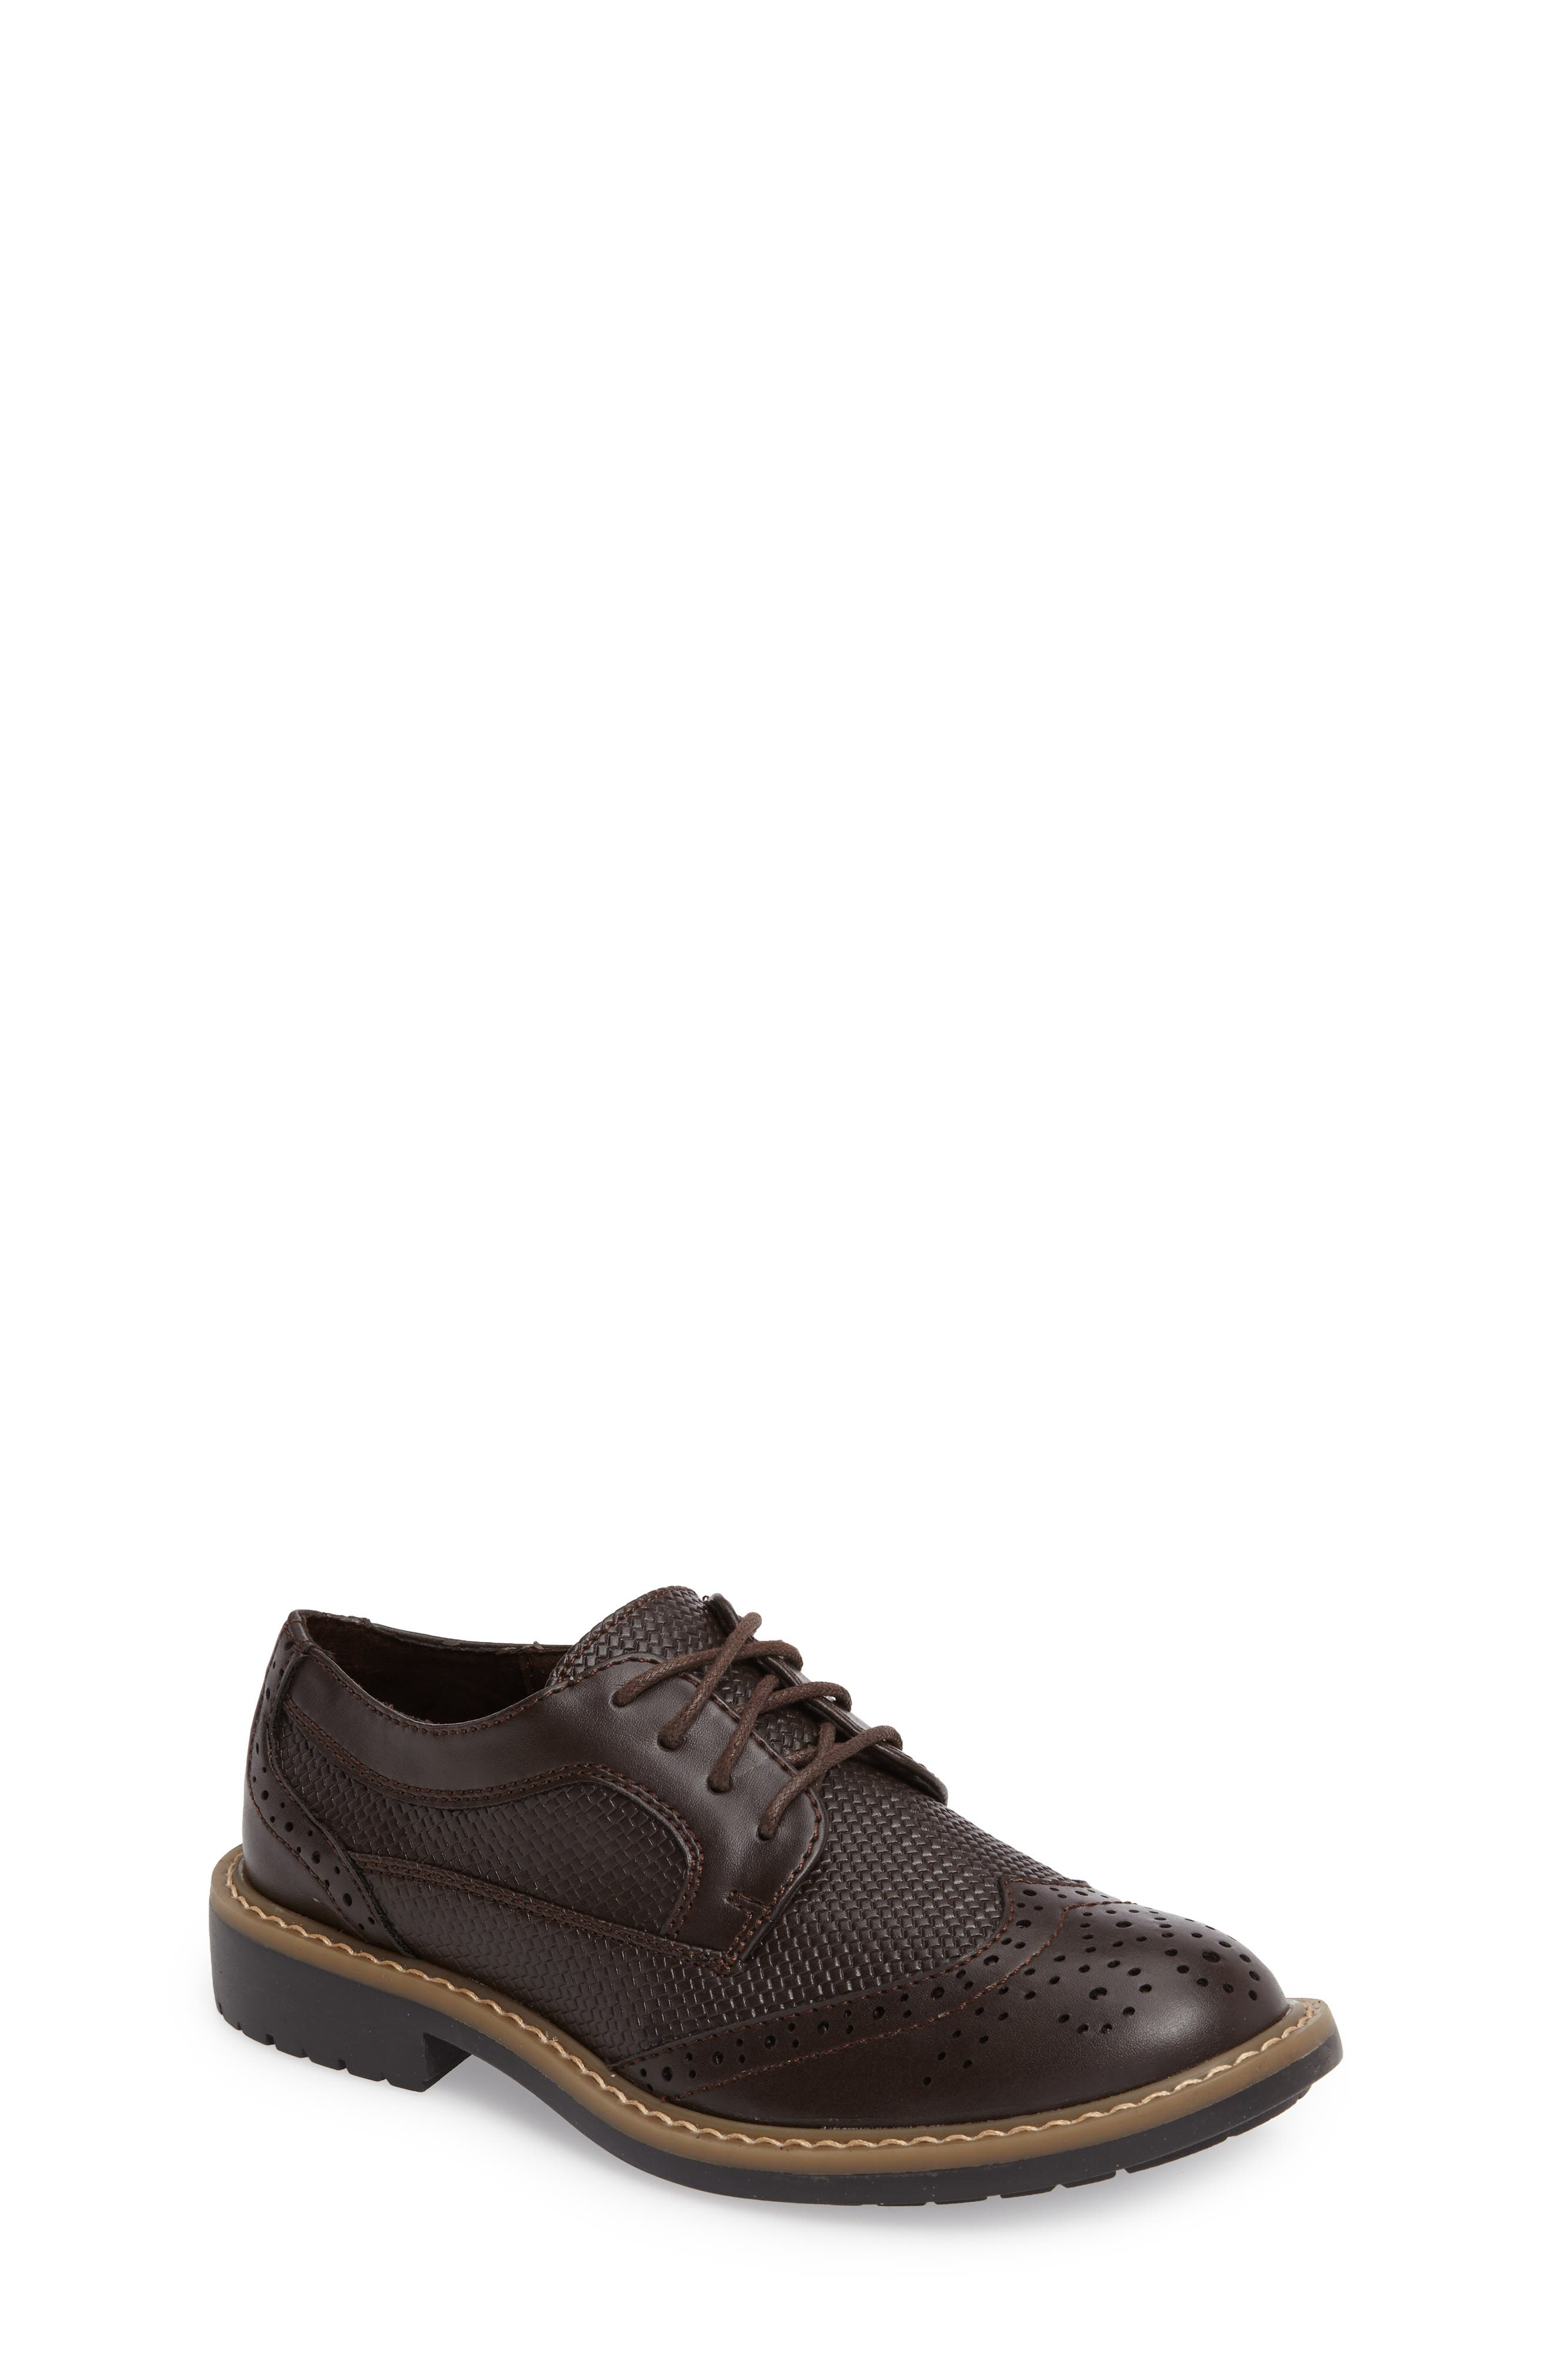 REACTION KENNETH COLE 'Take Fair' Wingtip Oxford